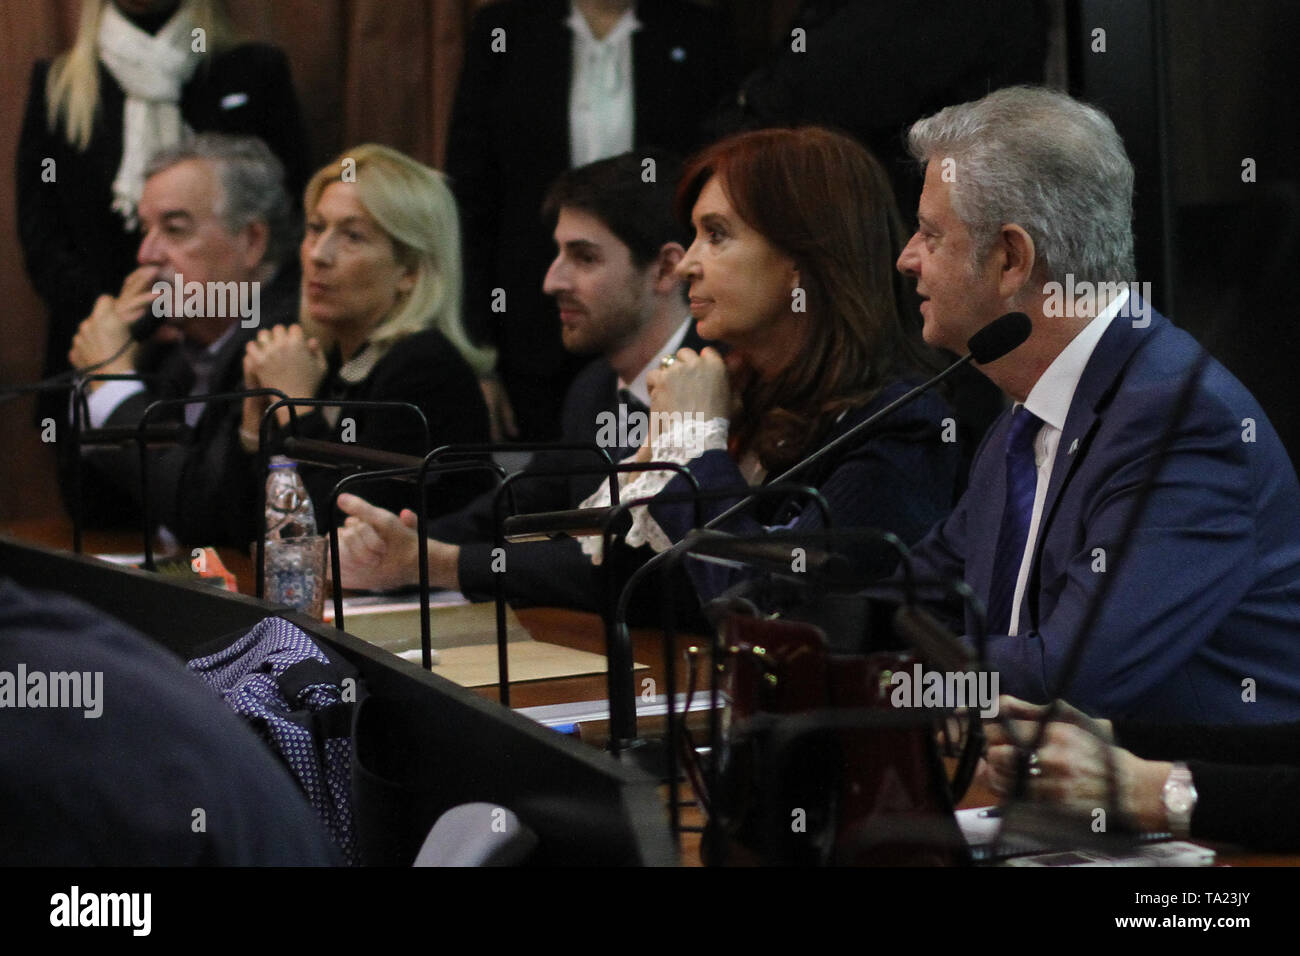 BUENOS AIRES, 21.05.2019: Cristina Kirchner, ex president of Argentina, shows at the Federal Court of Comodoro Py the first day of the oral and public Stock Photo